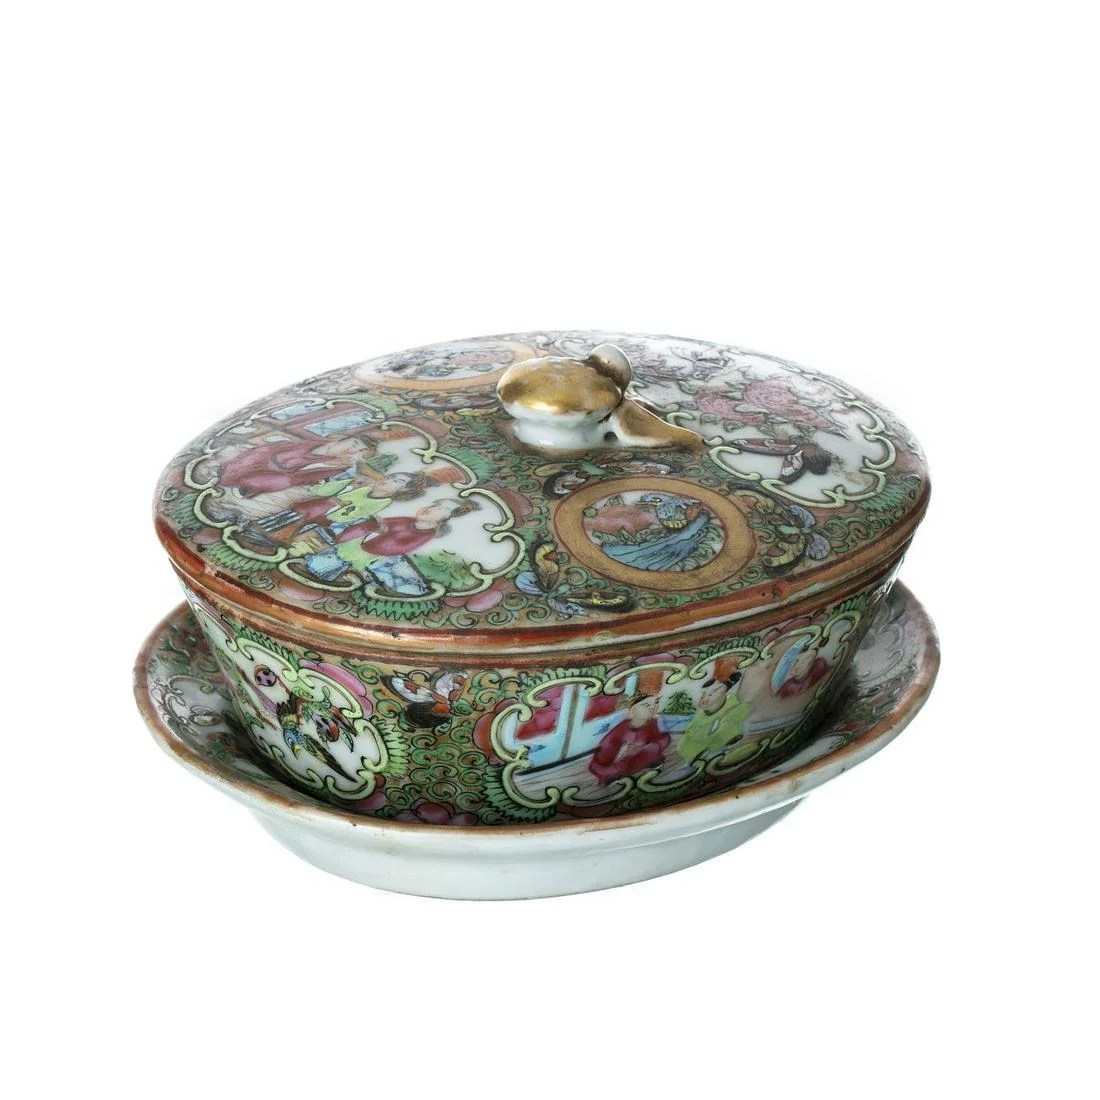 Rose medallion porcelain buttercup, Guangxu